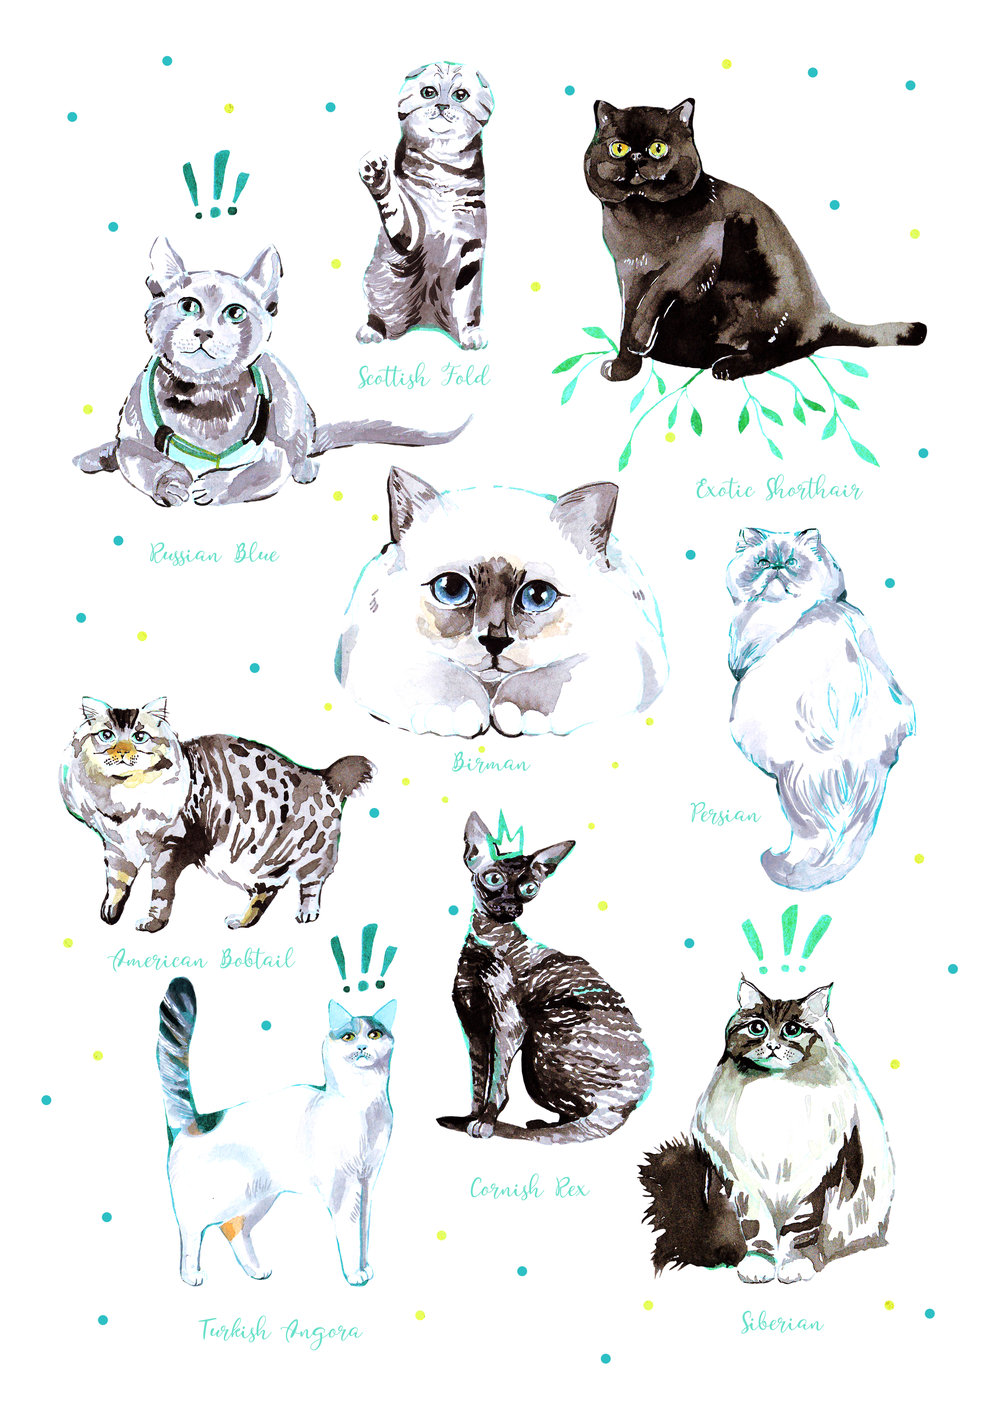 INKTOBER CATS POSTER BY ANCA PORA